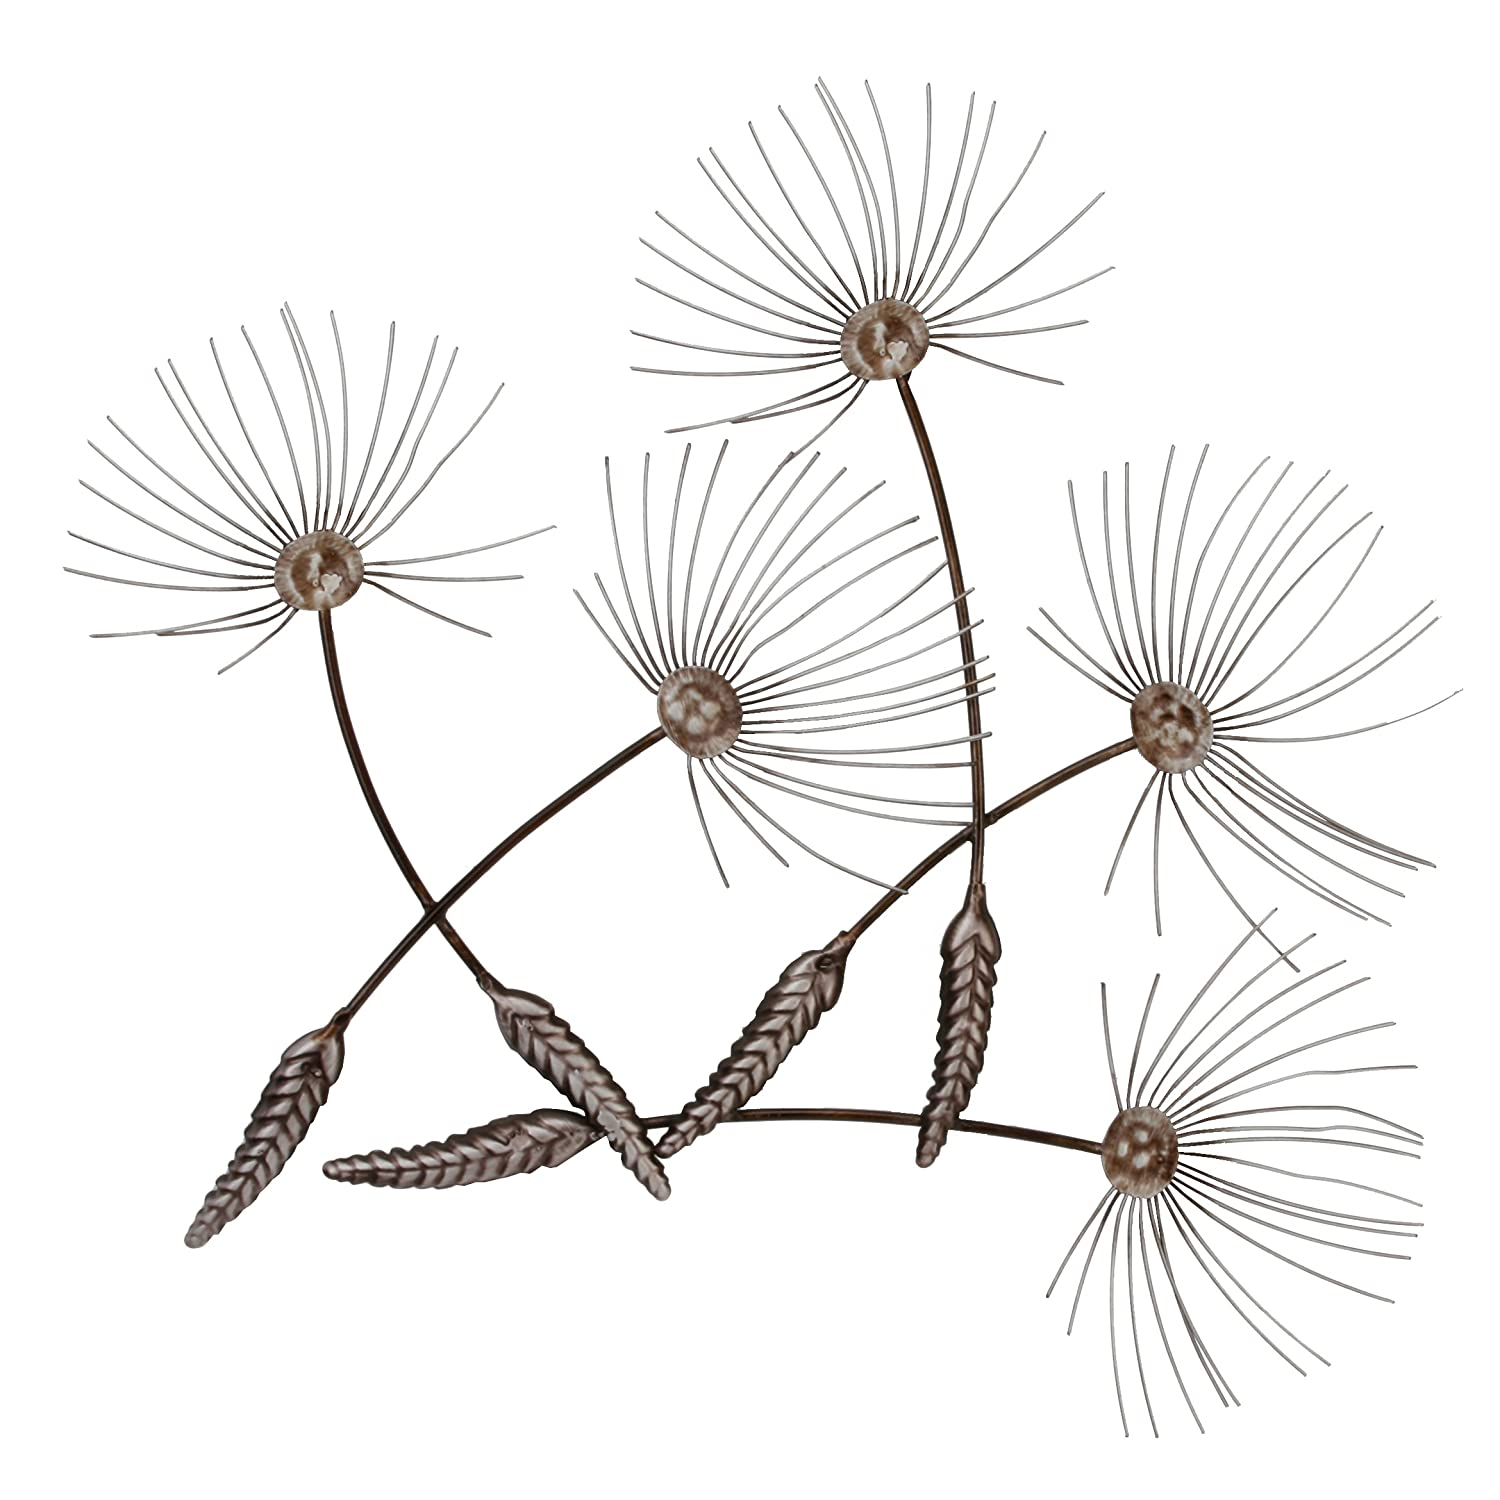 Dandelion Flower Line Drawing : Dandelion drawing pictures to pin on pinterest daddy